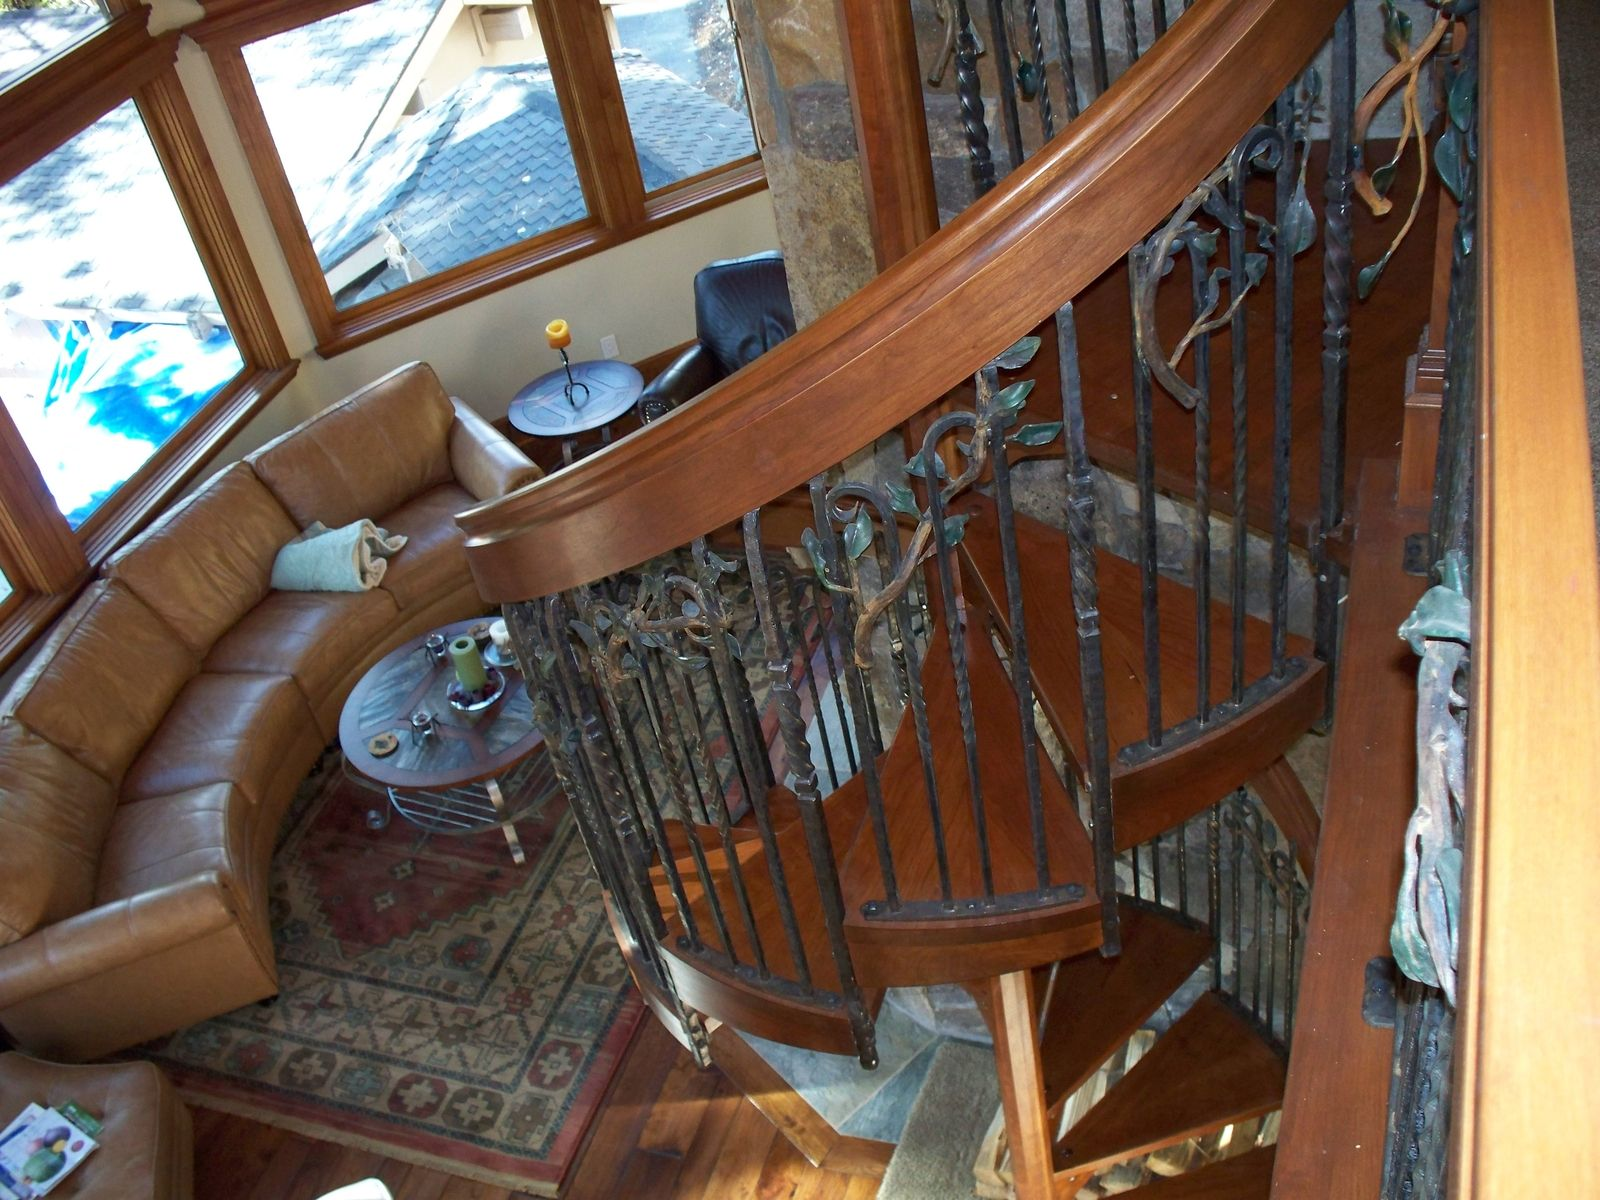 Hand Made Melting Iron Amp Wood Into A Spiral Staircase By